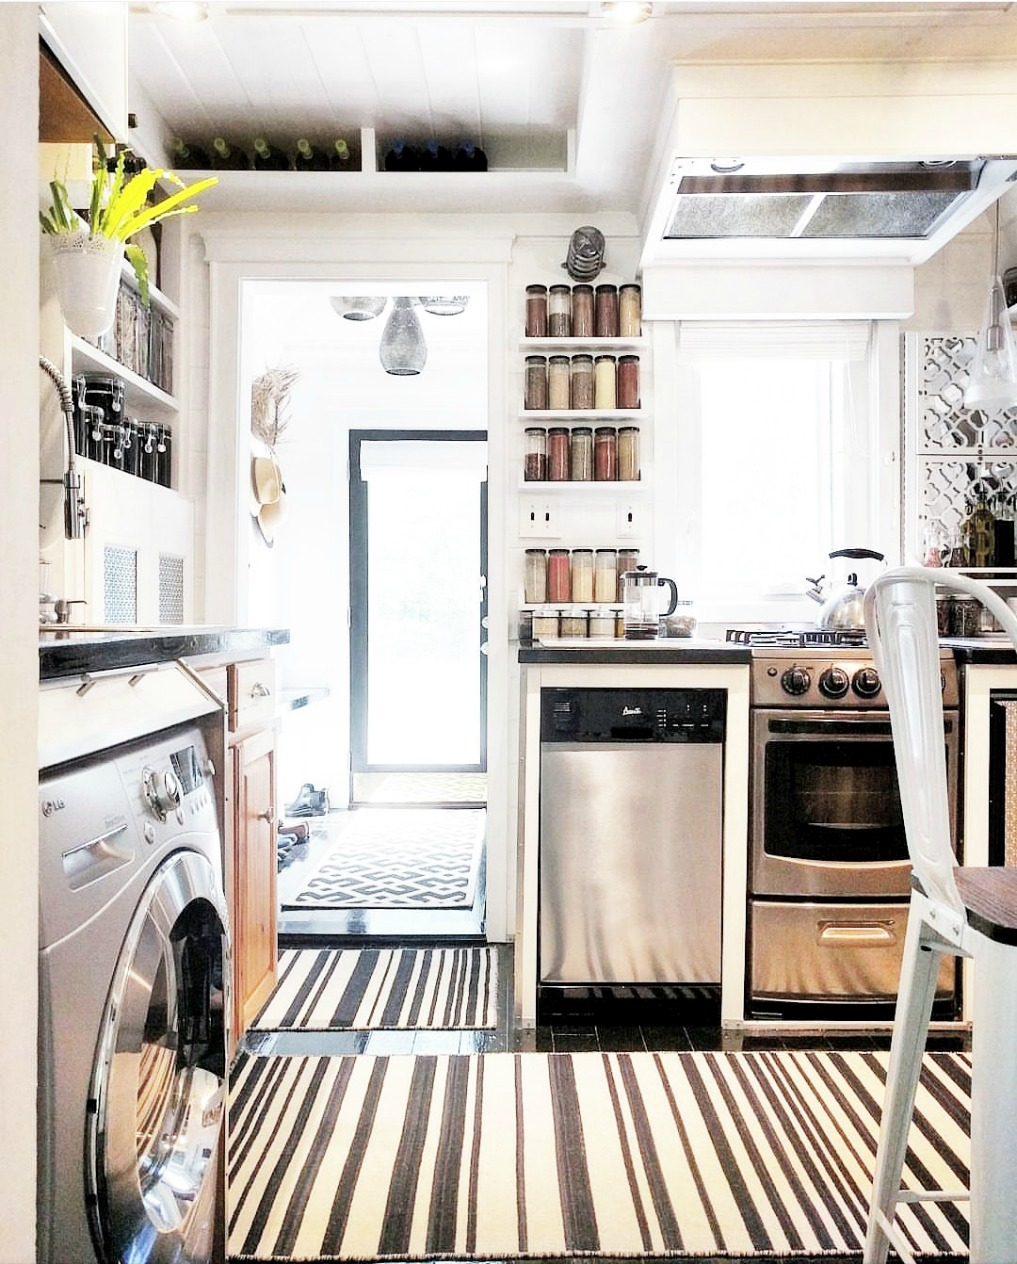 Eclectic Home Tour - Insieme House - tour this tiny house that has clever storage in this small kitchen laundry room combo